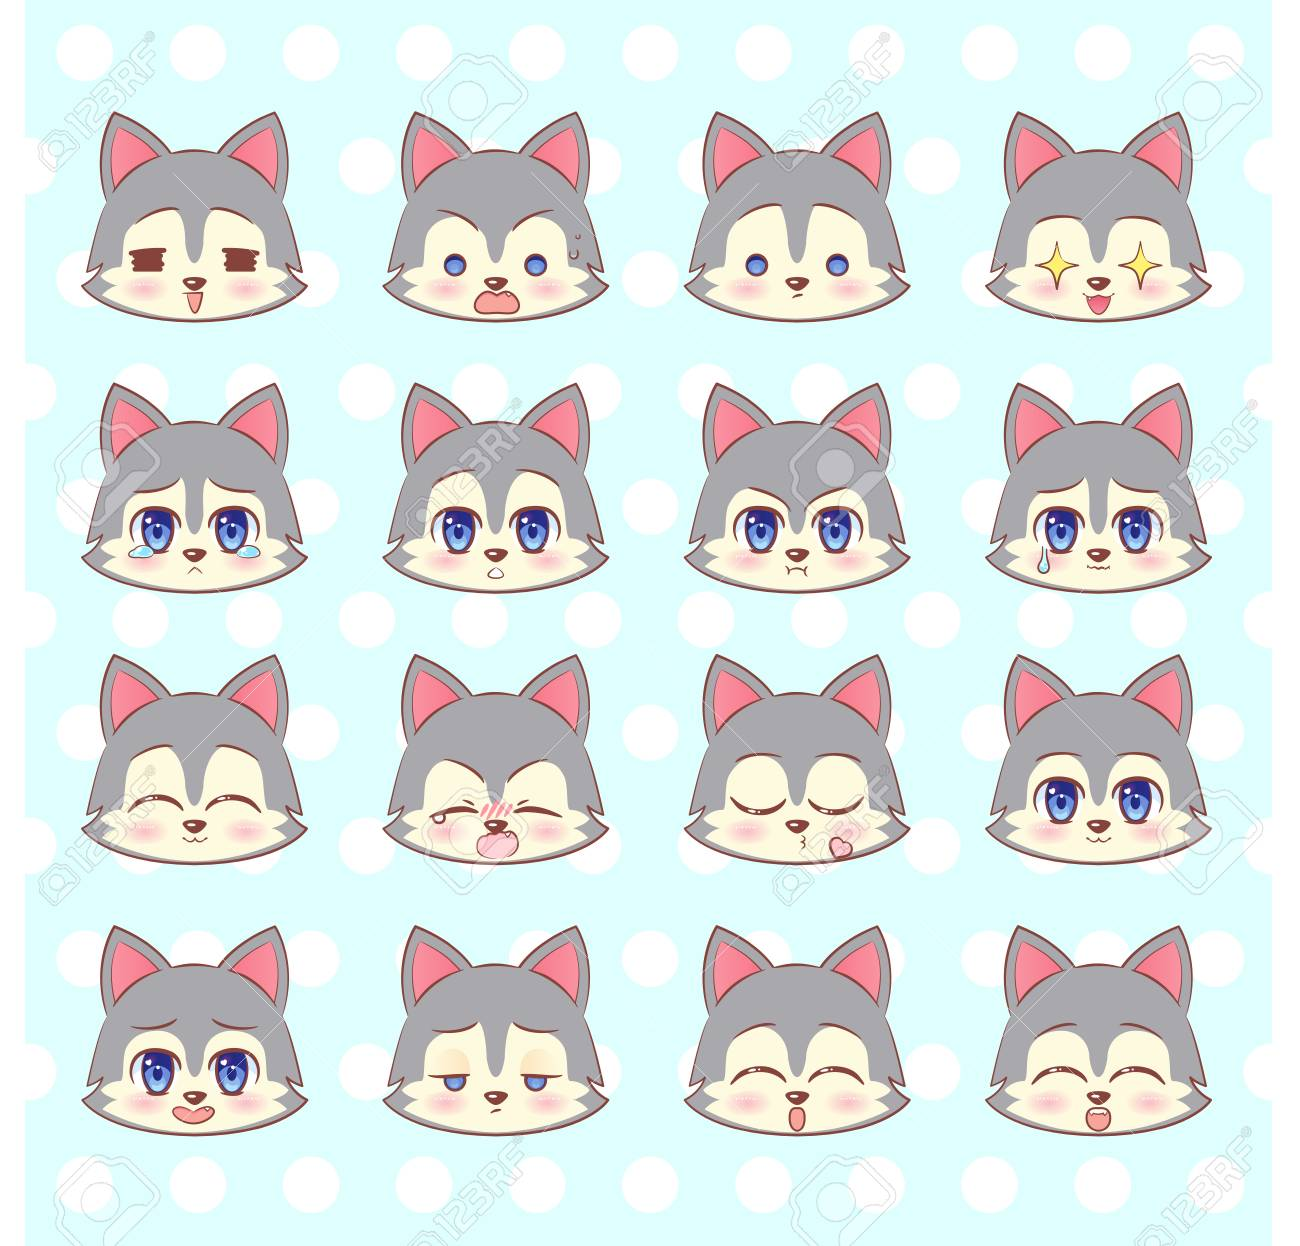 Emoticons Emoji Smiley Set Colorful Sweet Kitty Little Cute